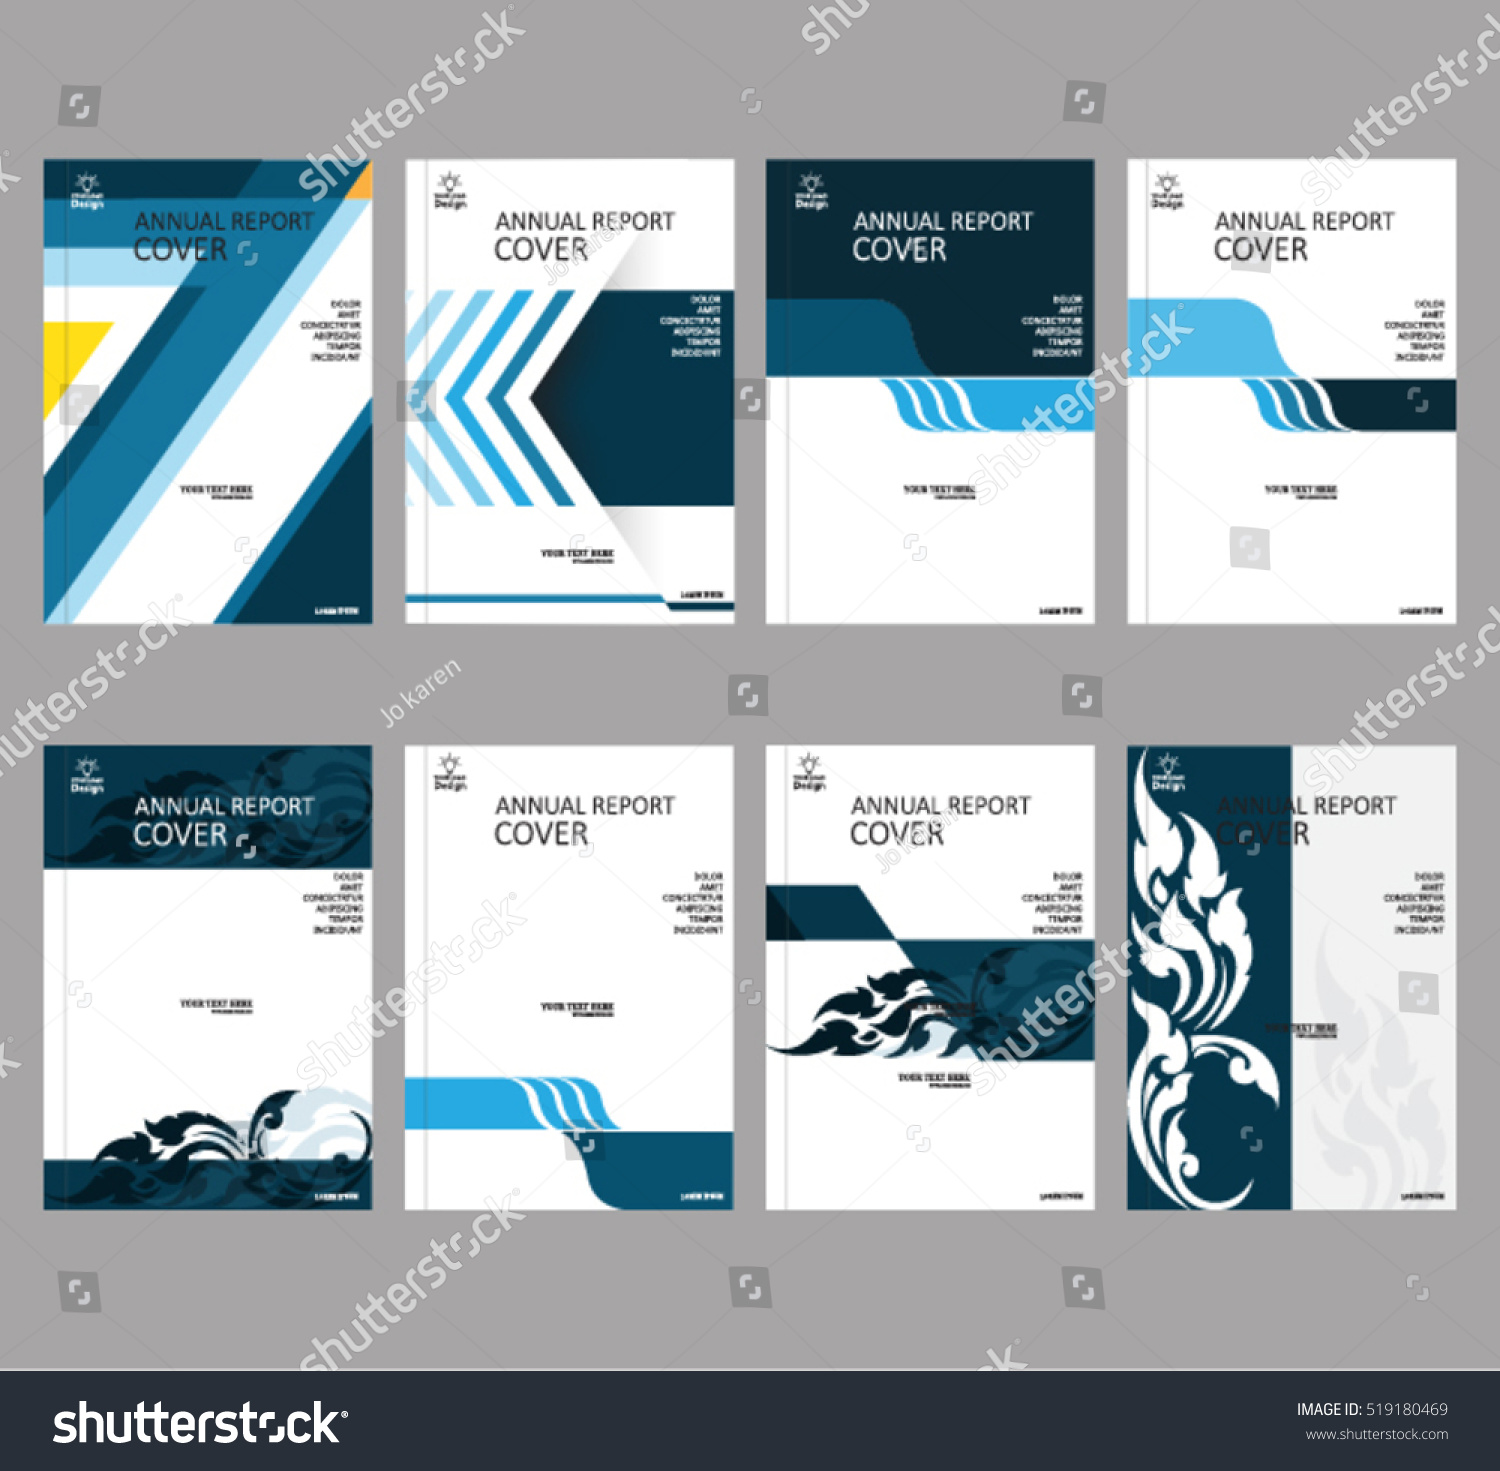 annual business report cover template booklet stock vector annual business report cover template booklet brochure cover poster presentation business